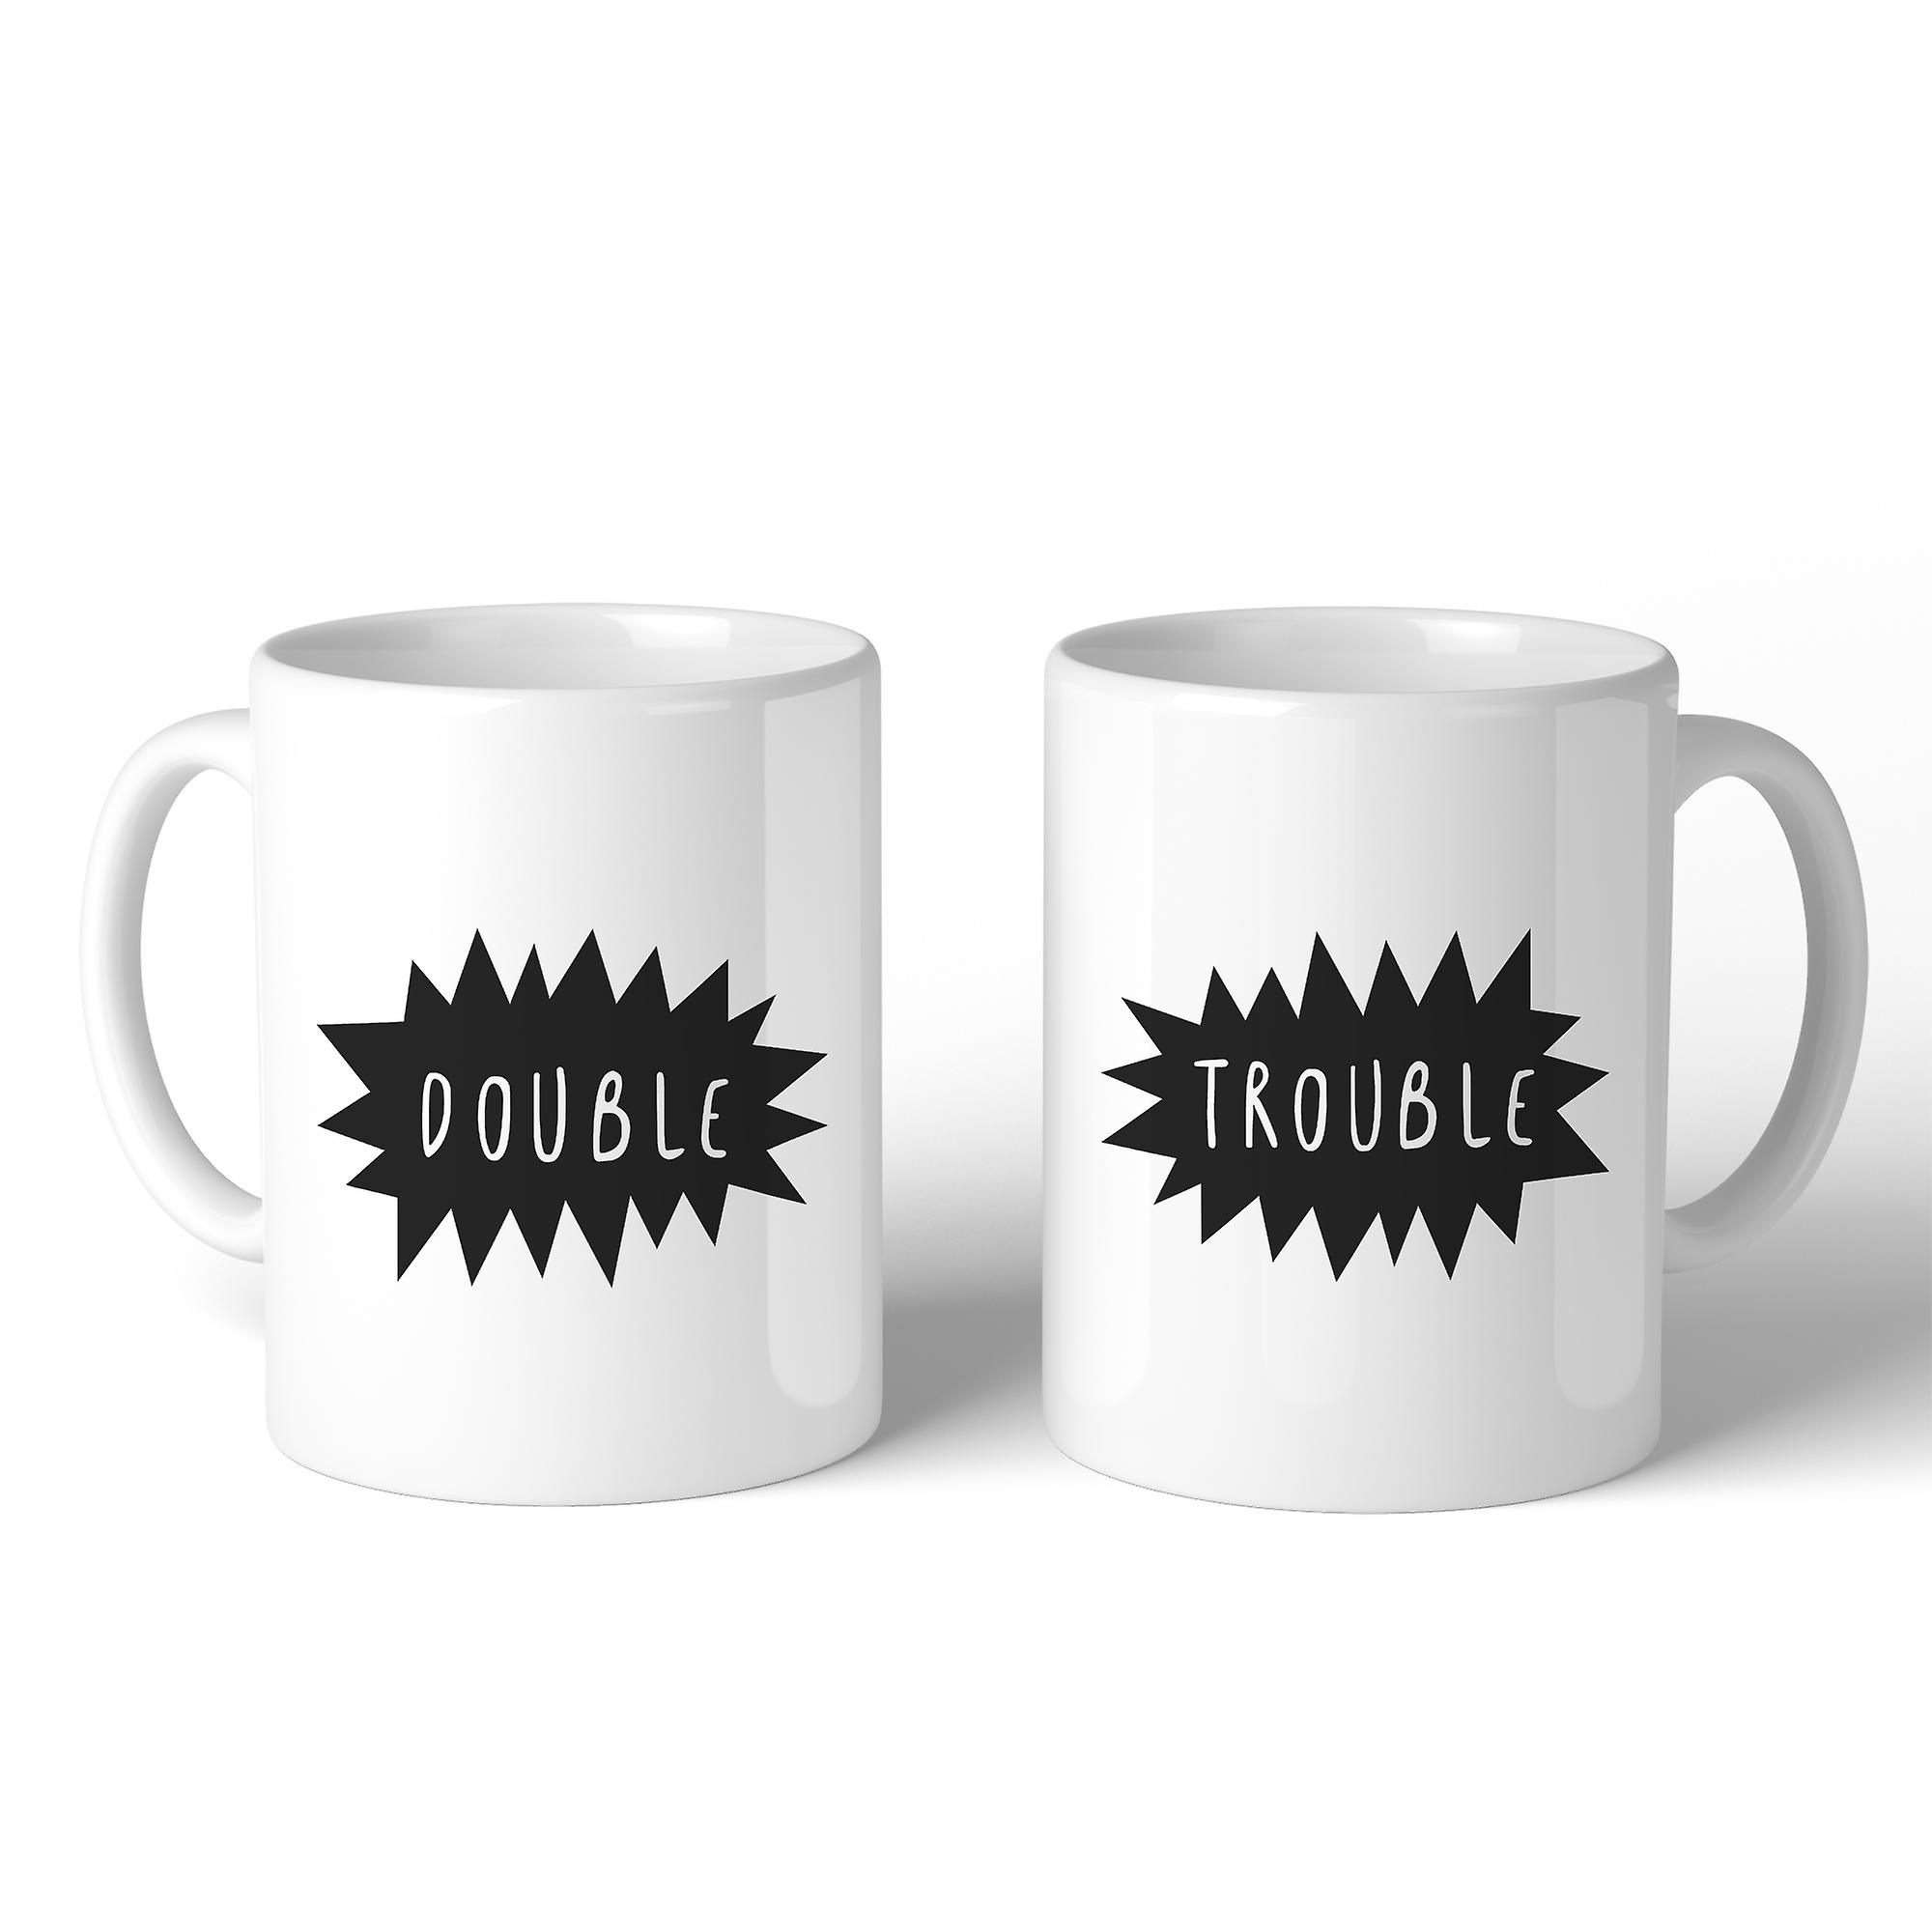 Best Mugs Unique Design Double Friends Trouble Funny Matching Gifts FclKT1J3